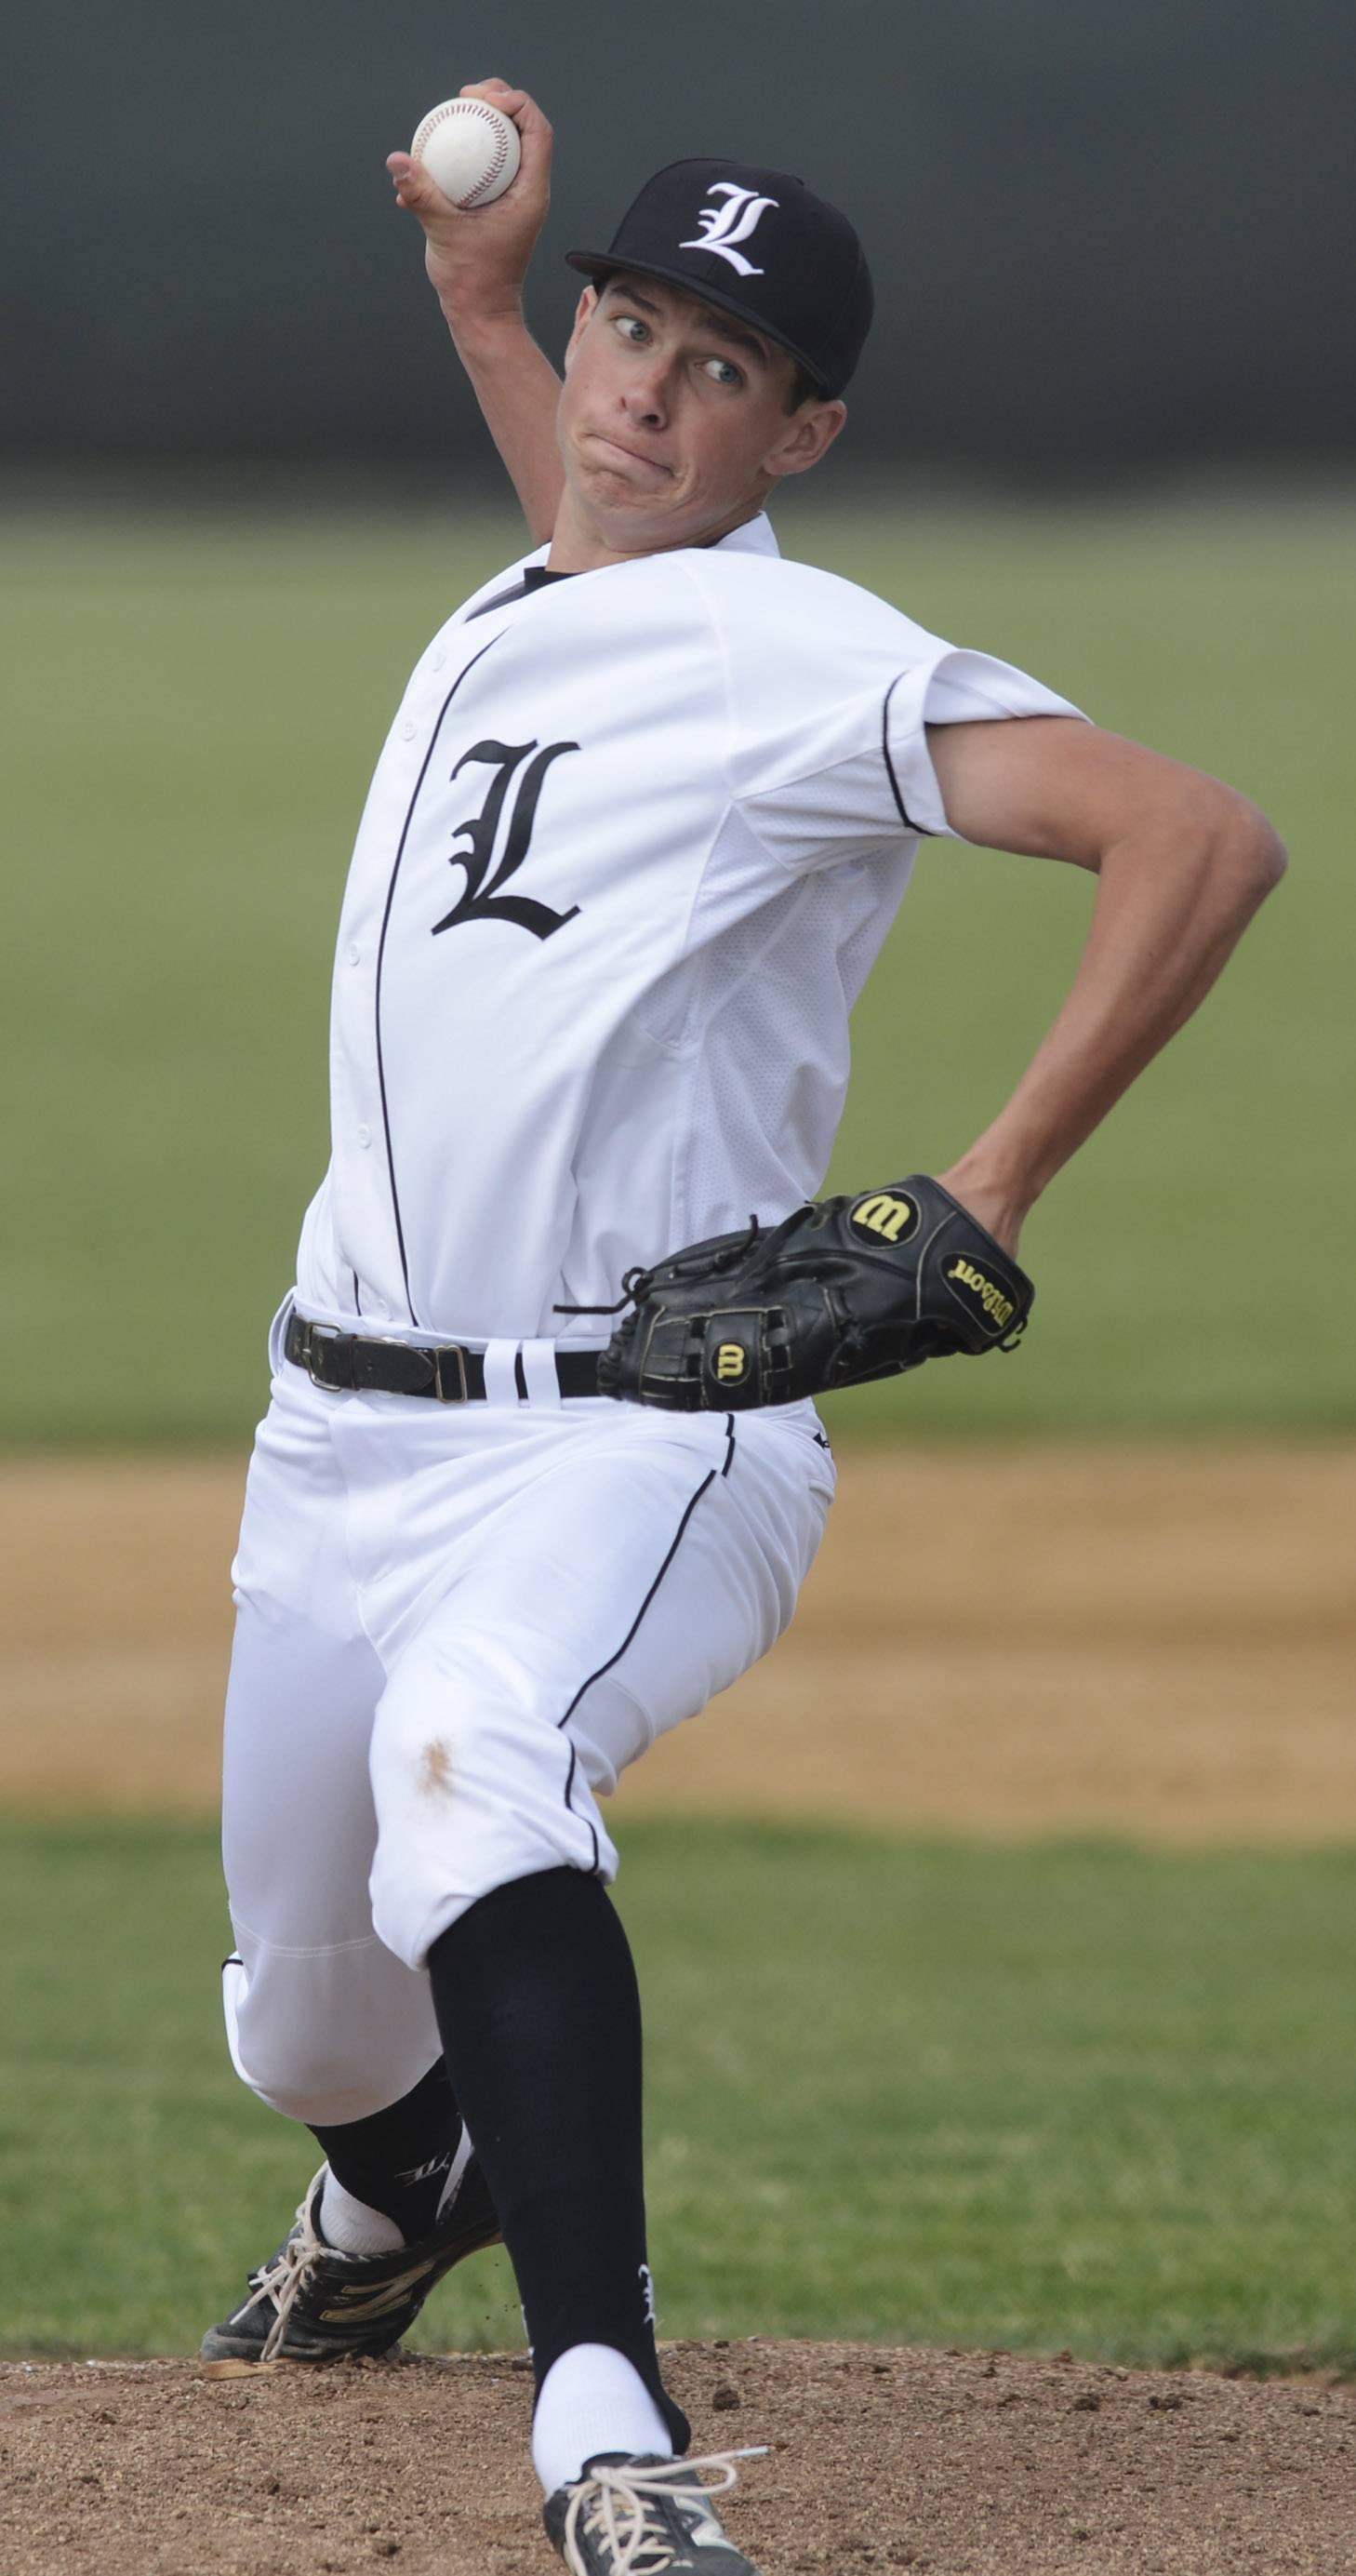 Libertyville pitcher Jeff Barton delivers during Class 4A baseball sectional semifinal play at Glenbrook South on Wednesday.